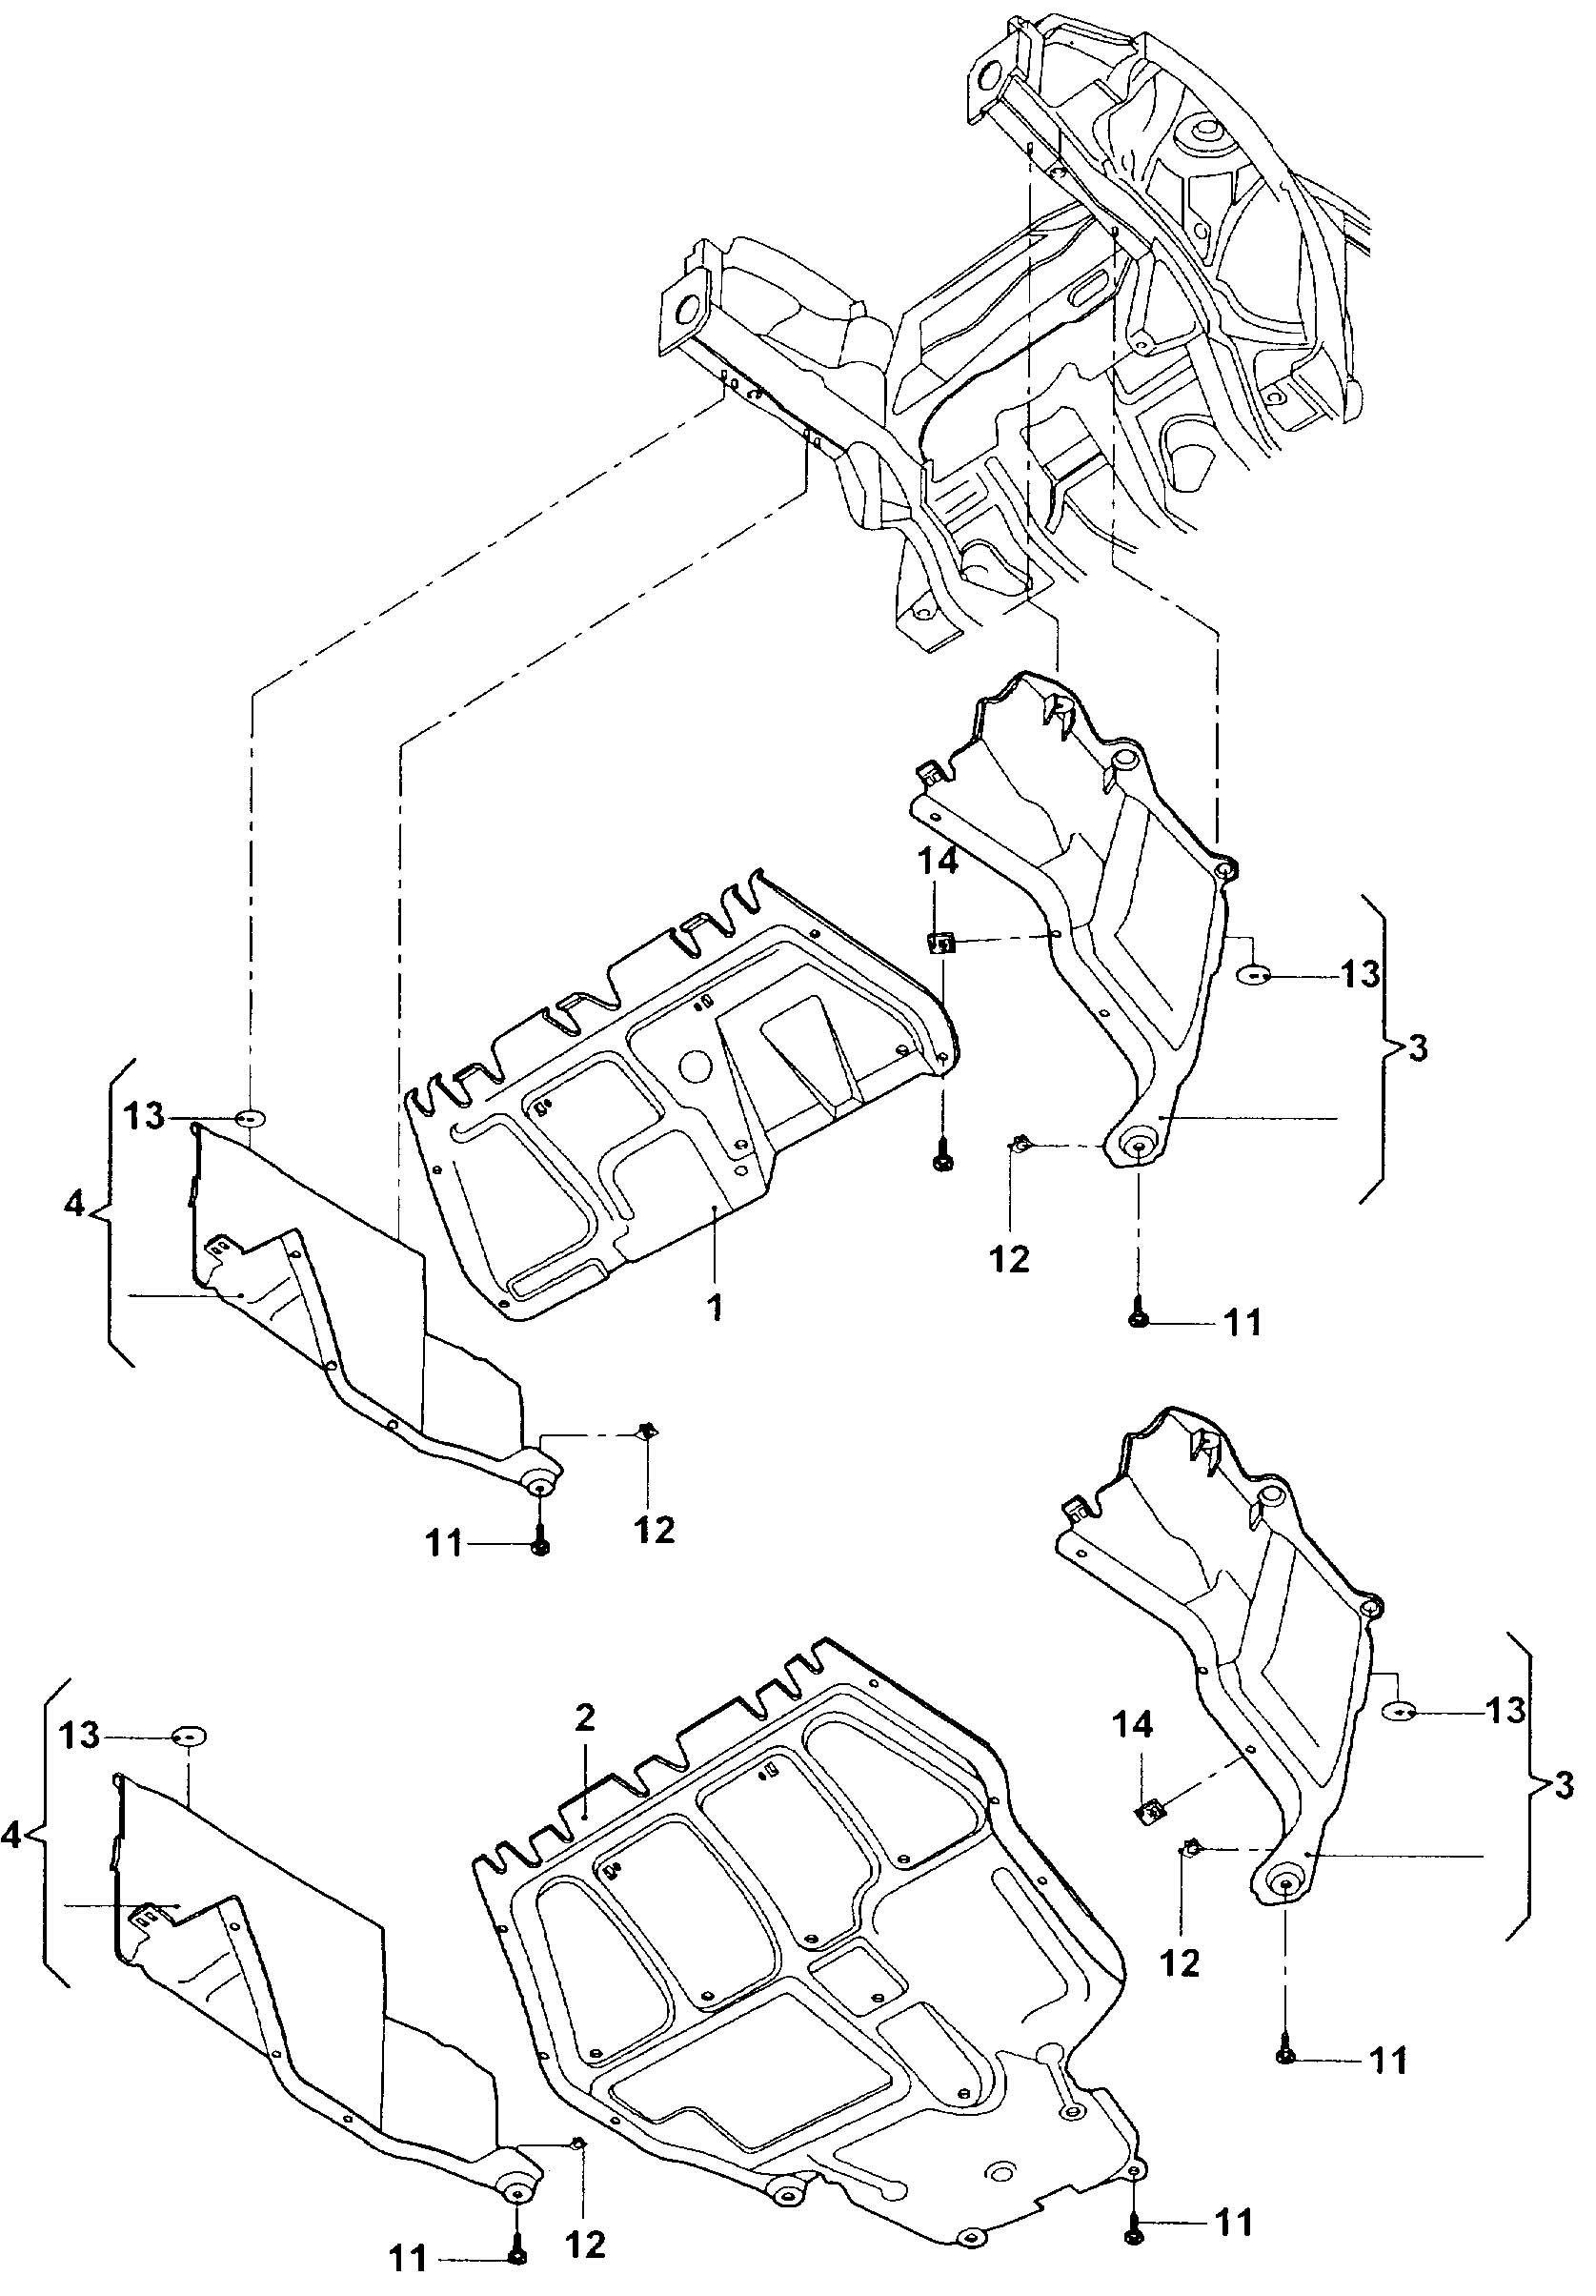 Volkswagen New Beetle Convertible Sound Baffle Contains